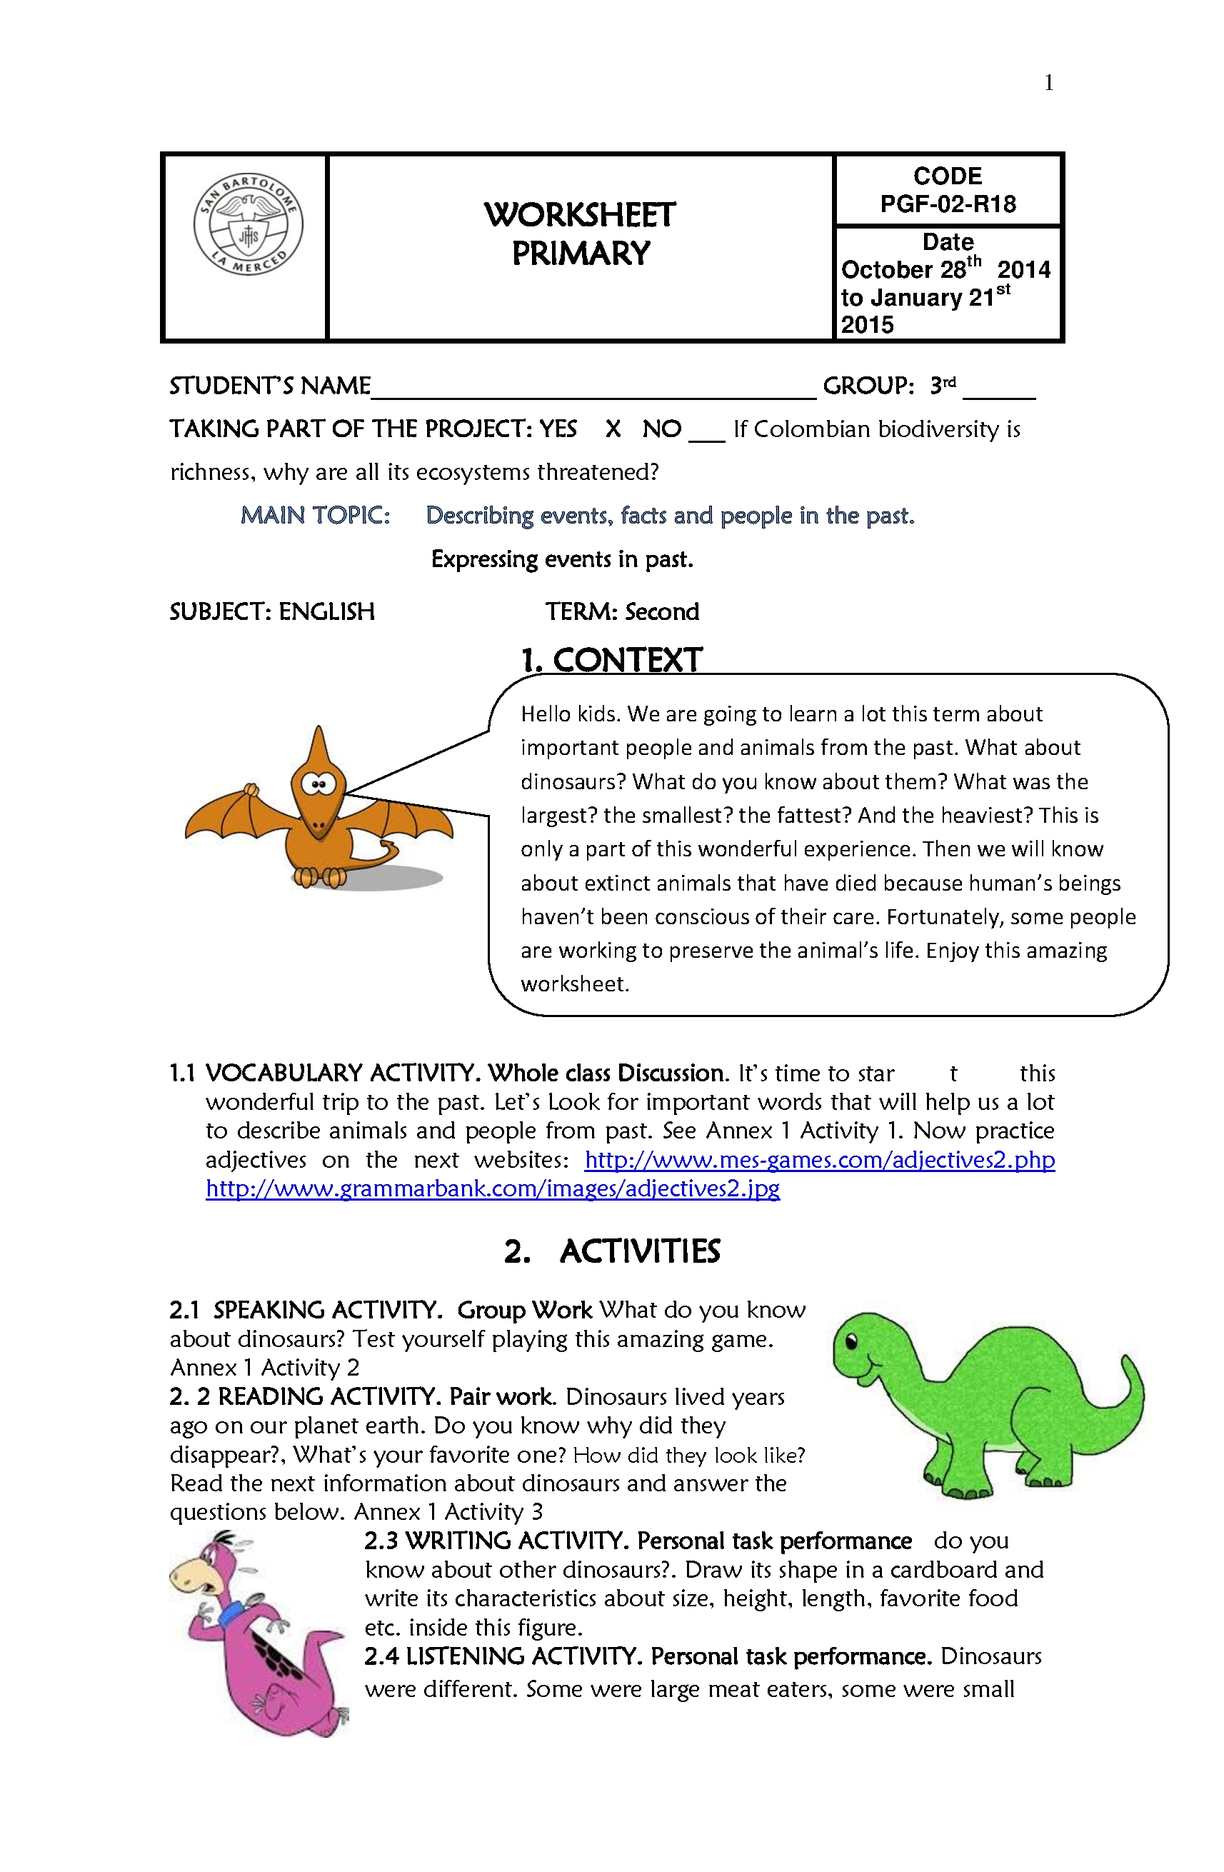 3rd Grade Ecosystem Worksheets Calaméo Worksheet Third Grade Second Term